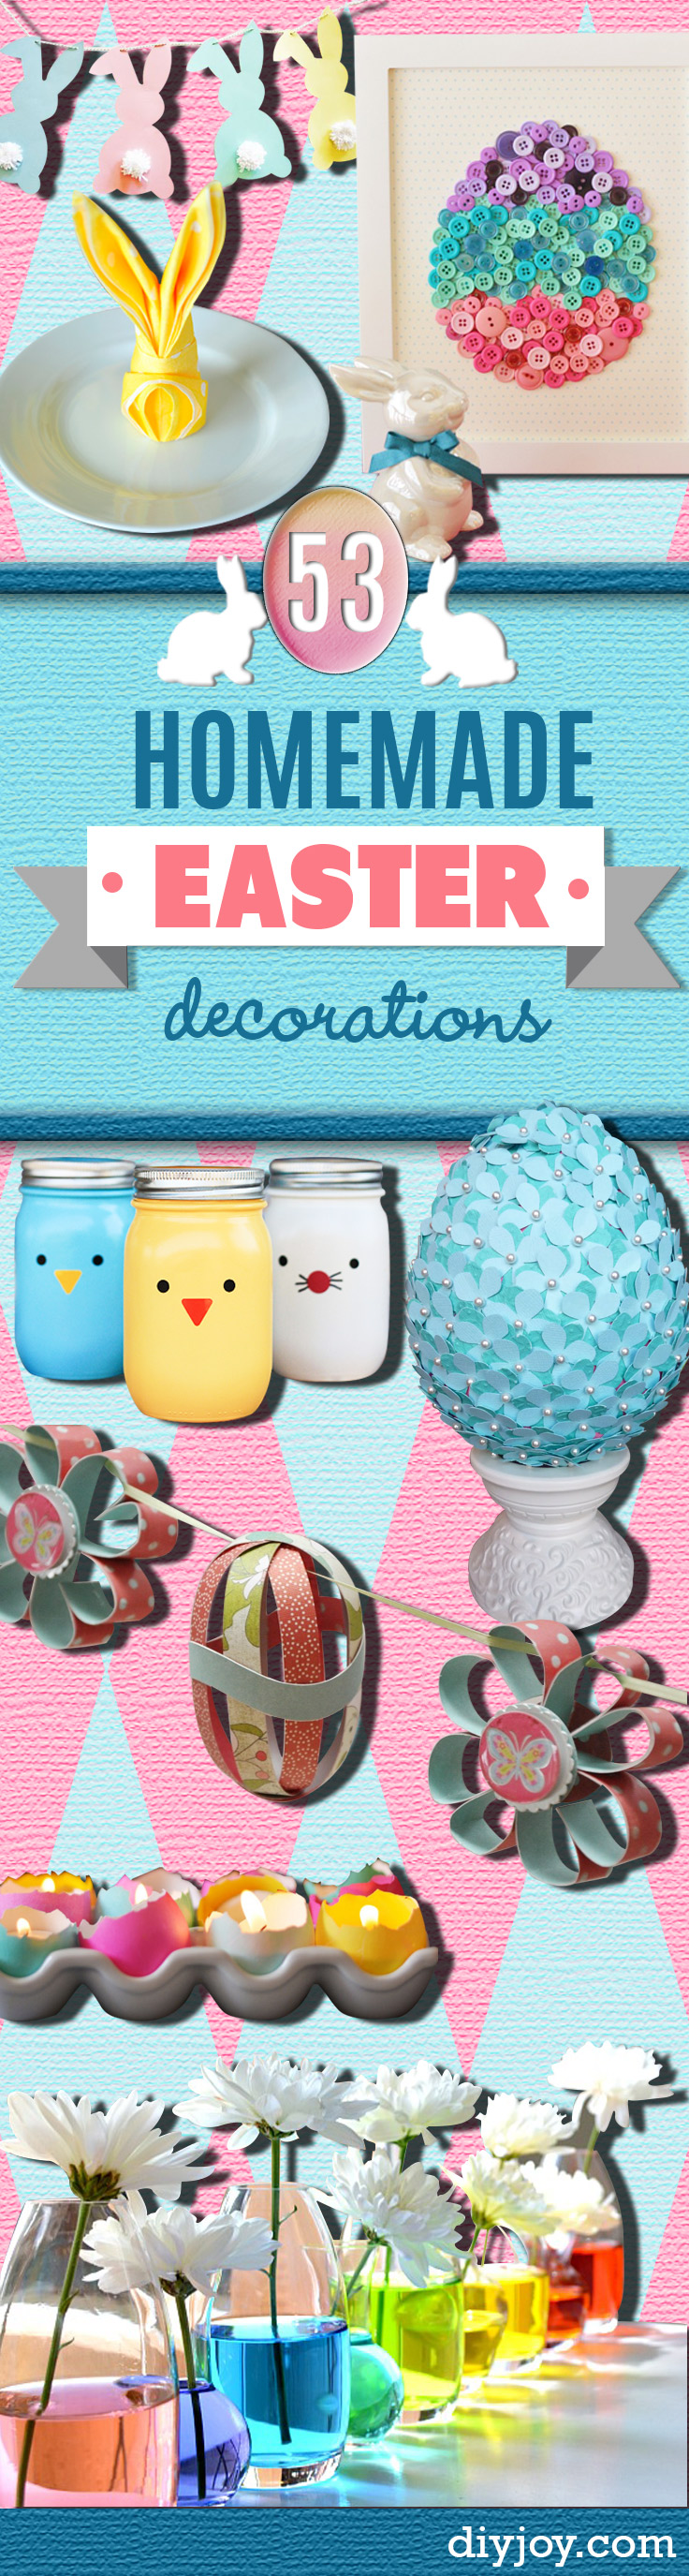 48 Diy Easter Decorations Easy Easter Crafts And Home Decor